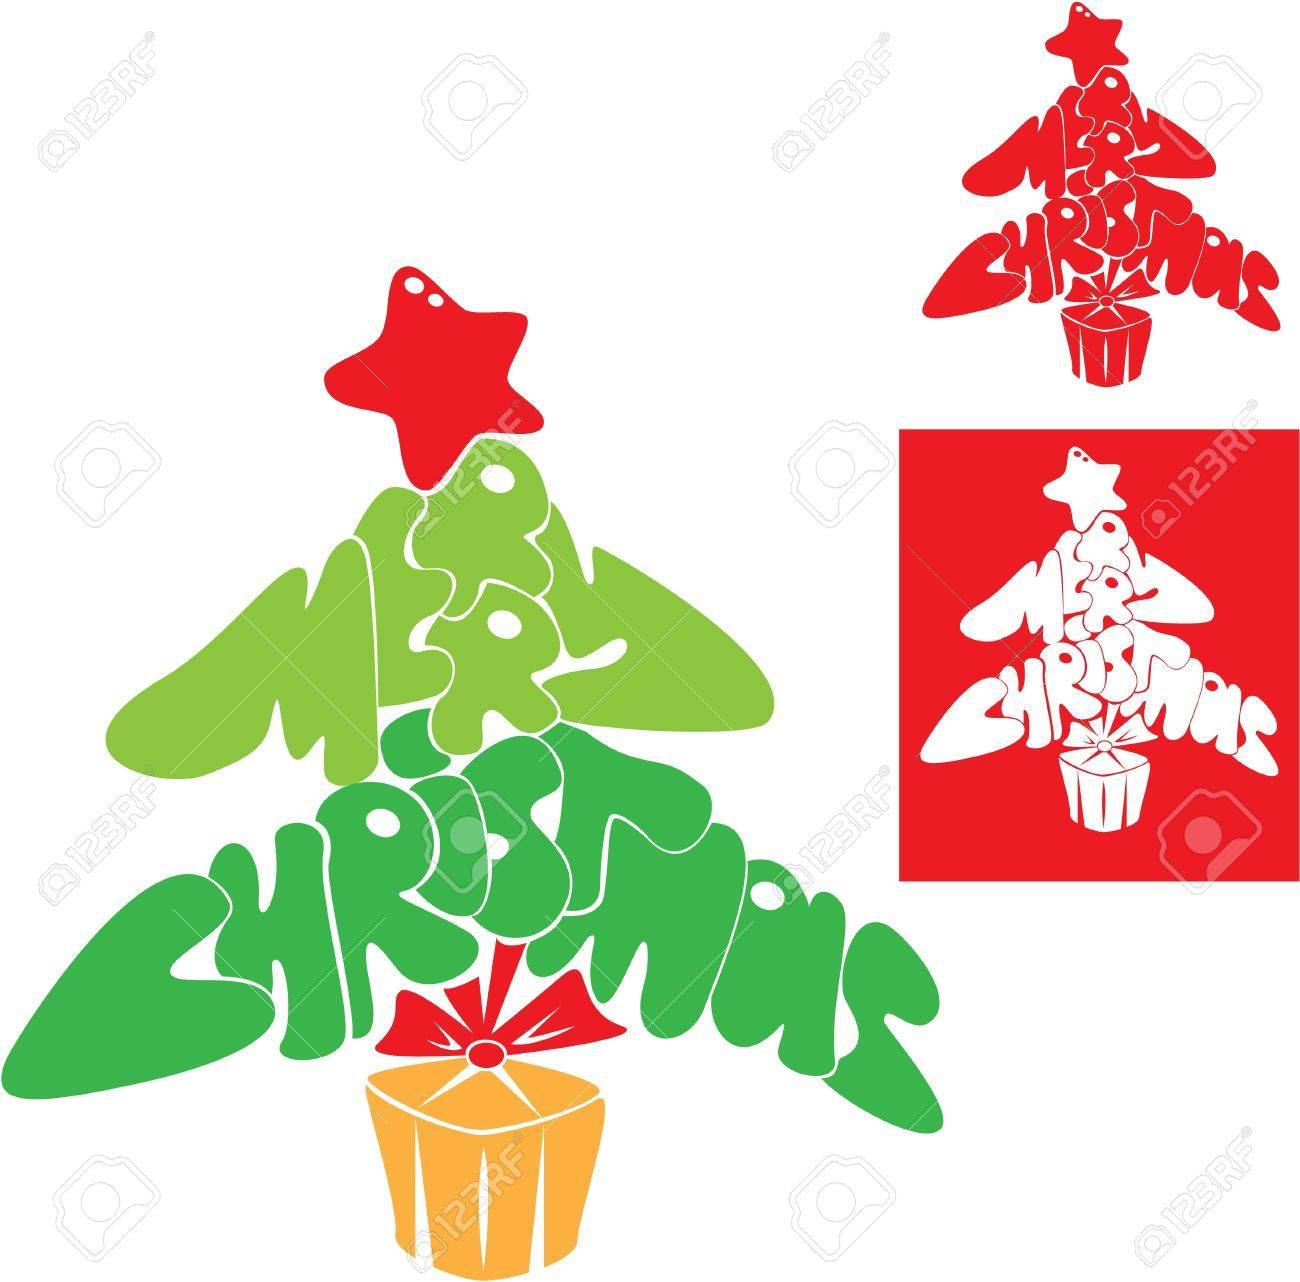 Abstract Merry Christmas card - Christmas tree is made of letters Stock Vector - 16145999